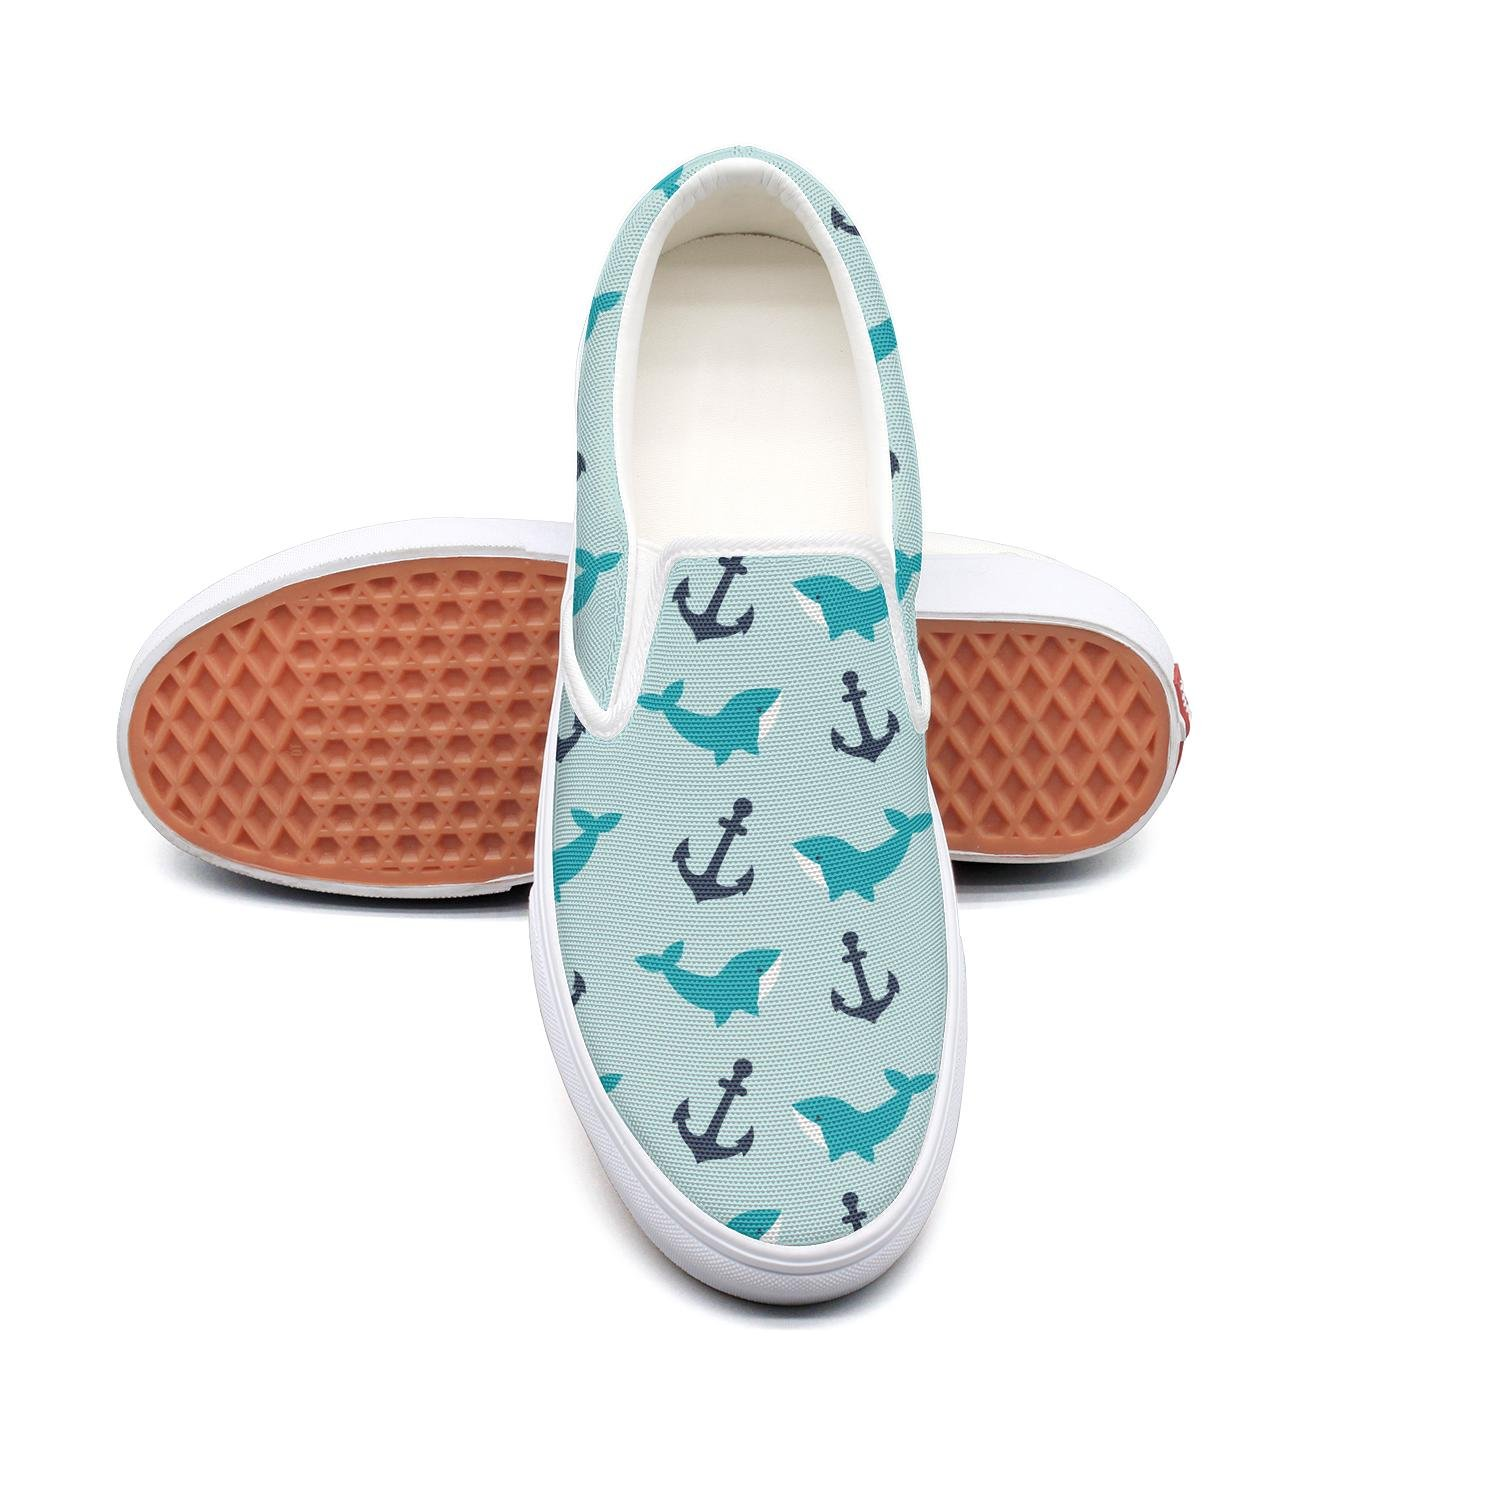 anchor whale pattern slip on Rubber Sole loafers canvas shoes for women Fashion